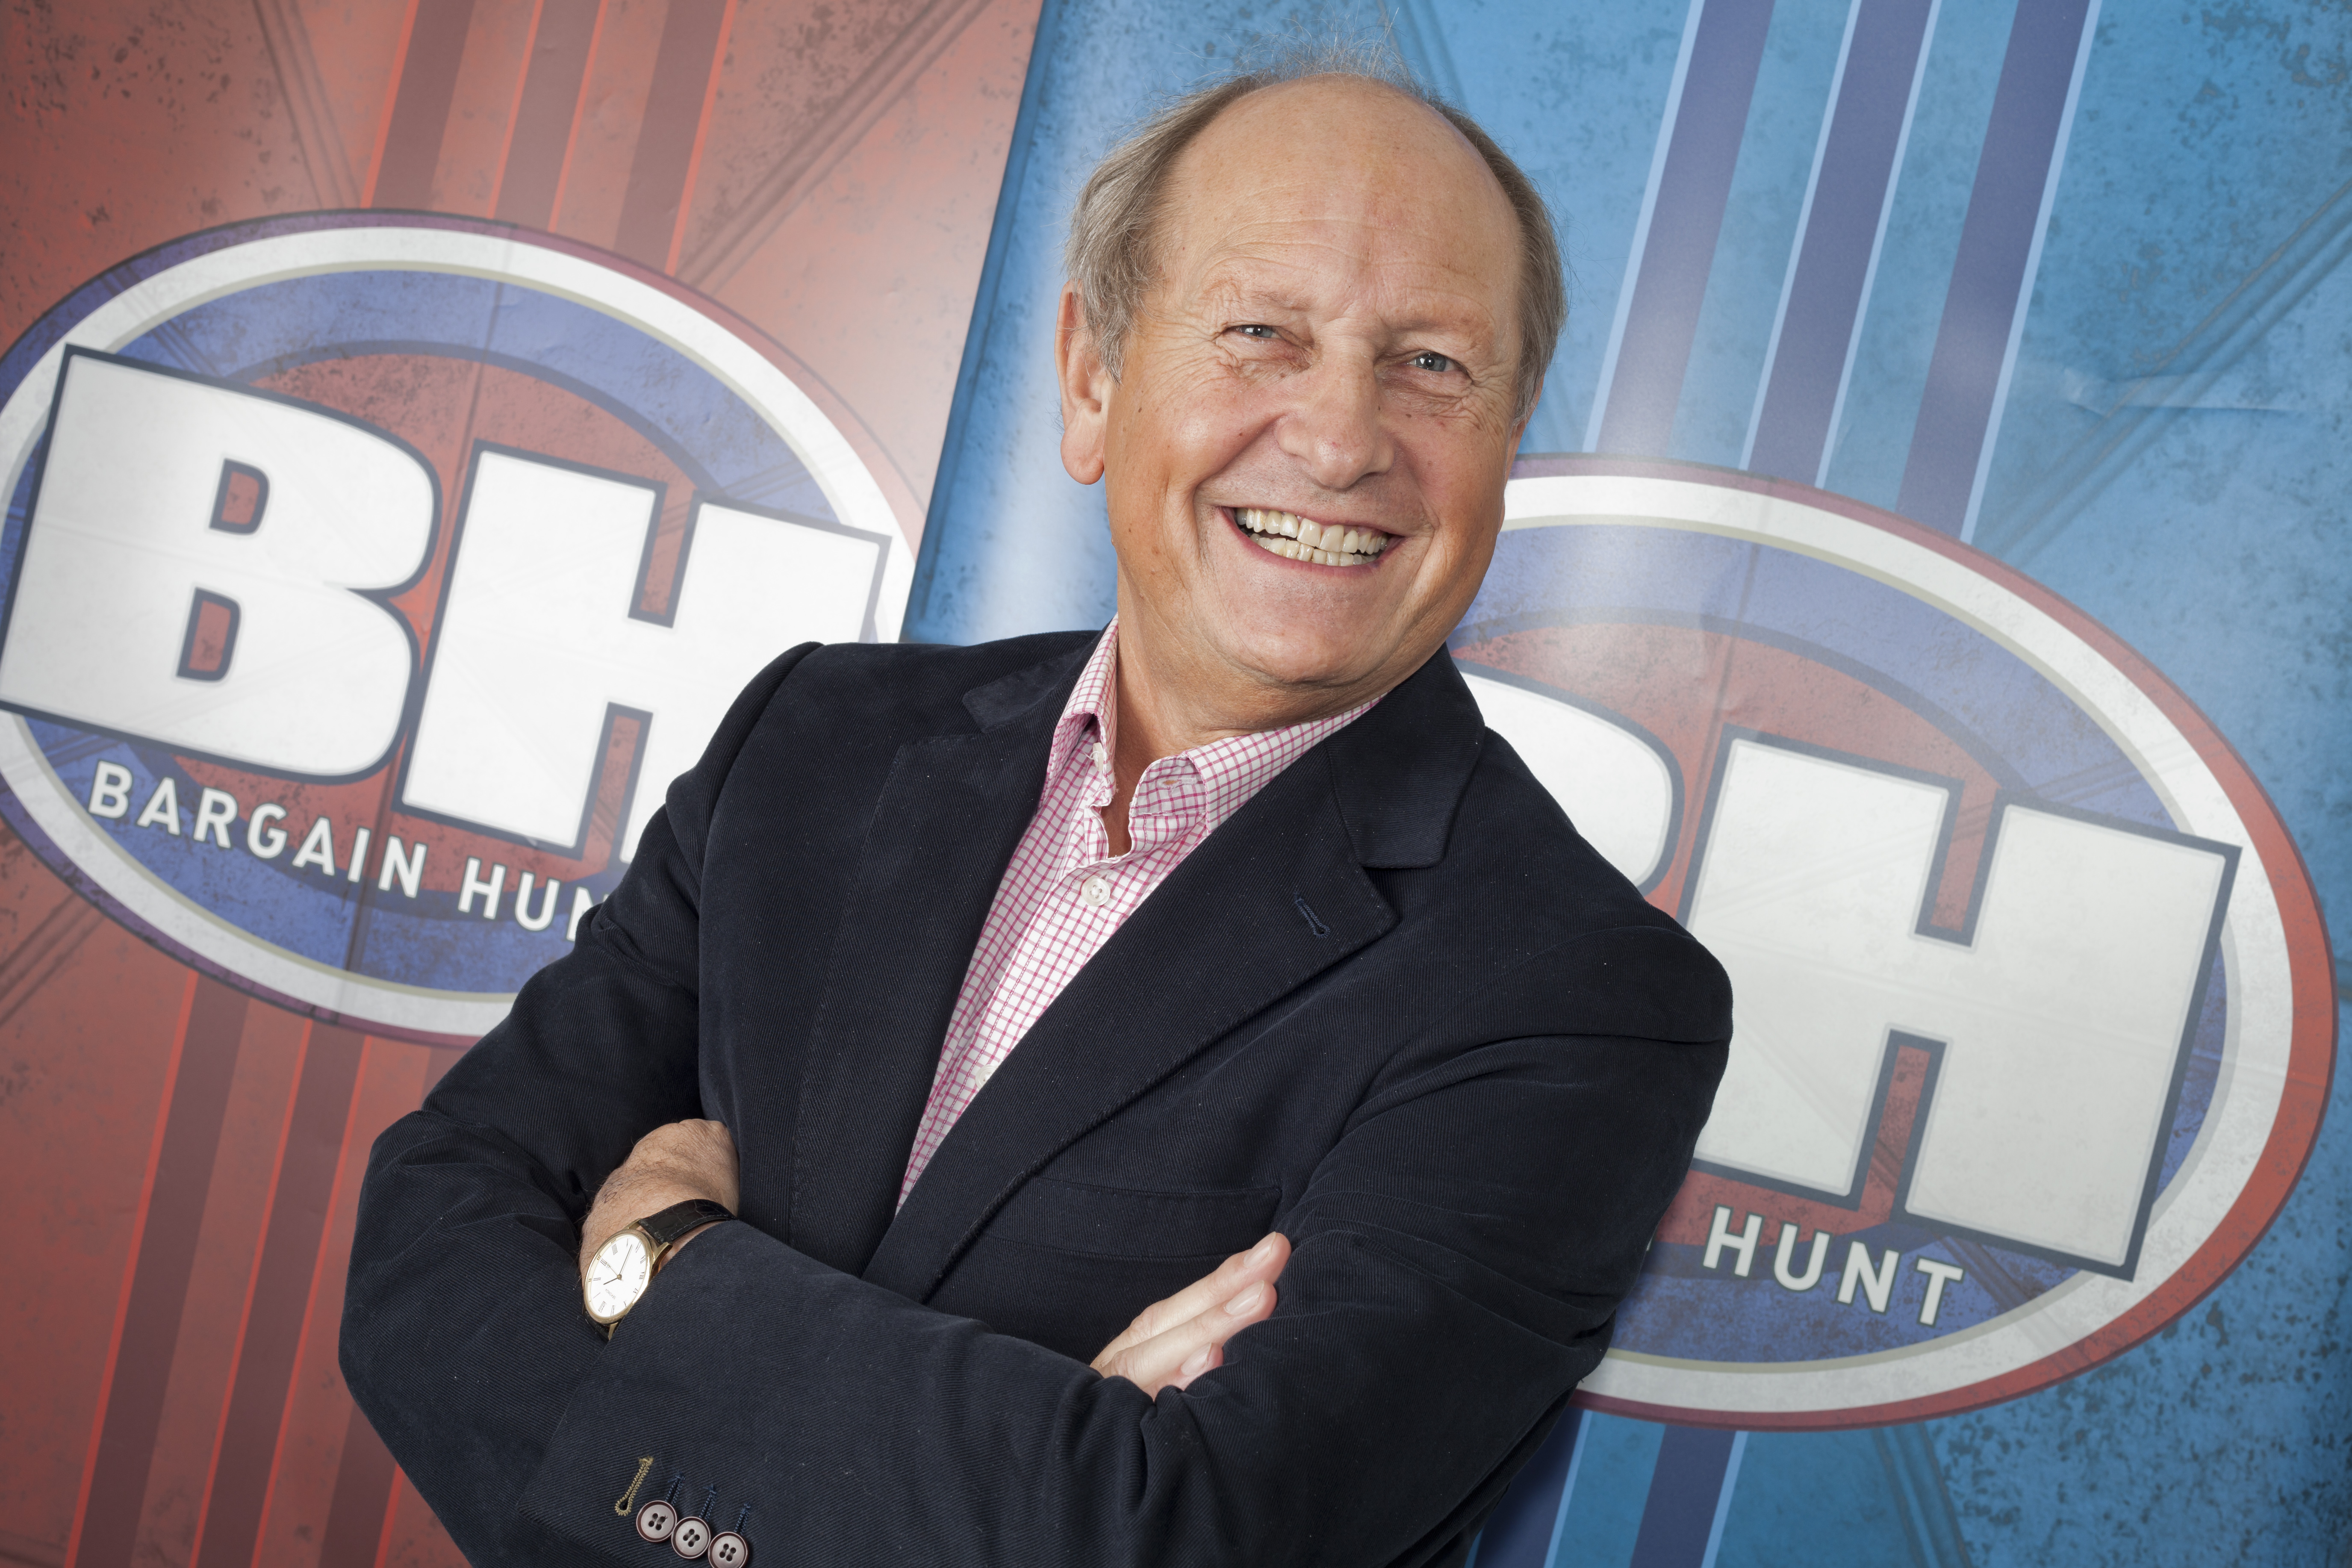 Lot 66 - **Watch a Middlesex County match at Lord's with Bargain Hunt presenter, Cricket fanatic Charlie Ross